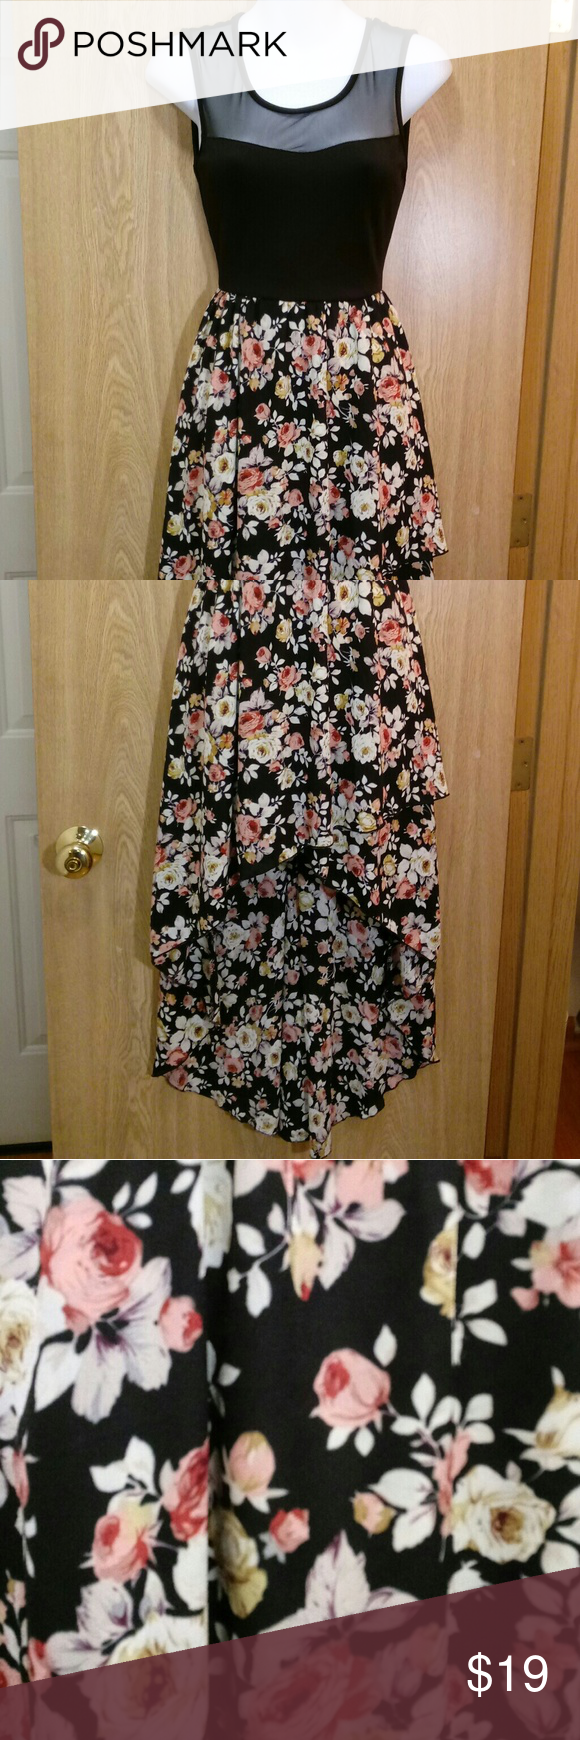 Vibe - High-low black & floral dress with mesh -Top part is stretchy -Beautiful condition! Vibe Dresses Asymmetrical